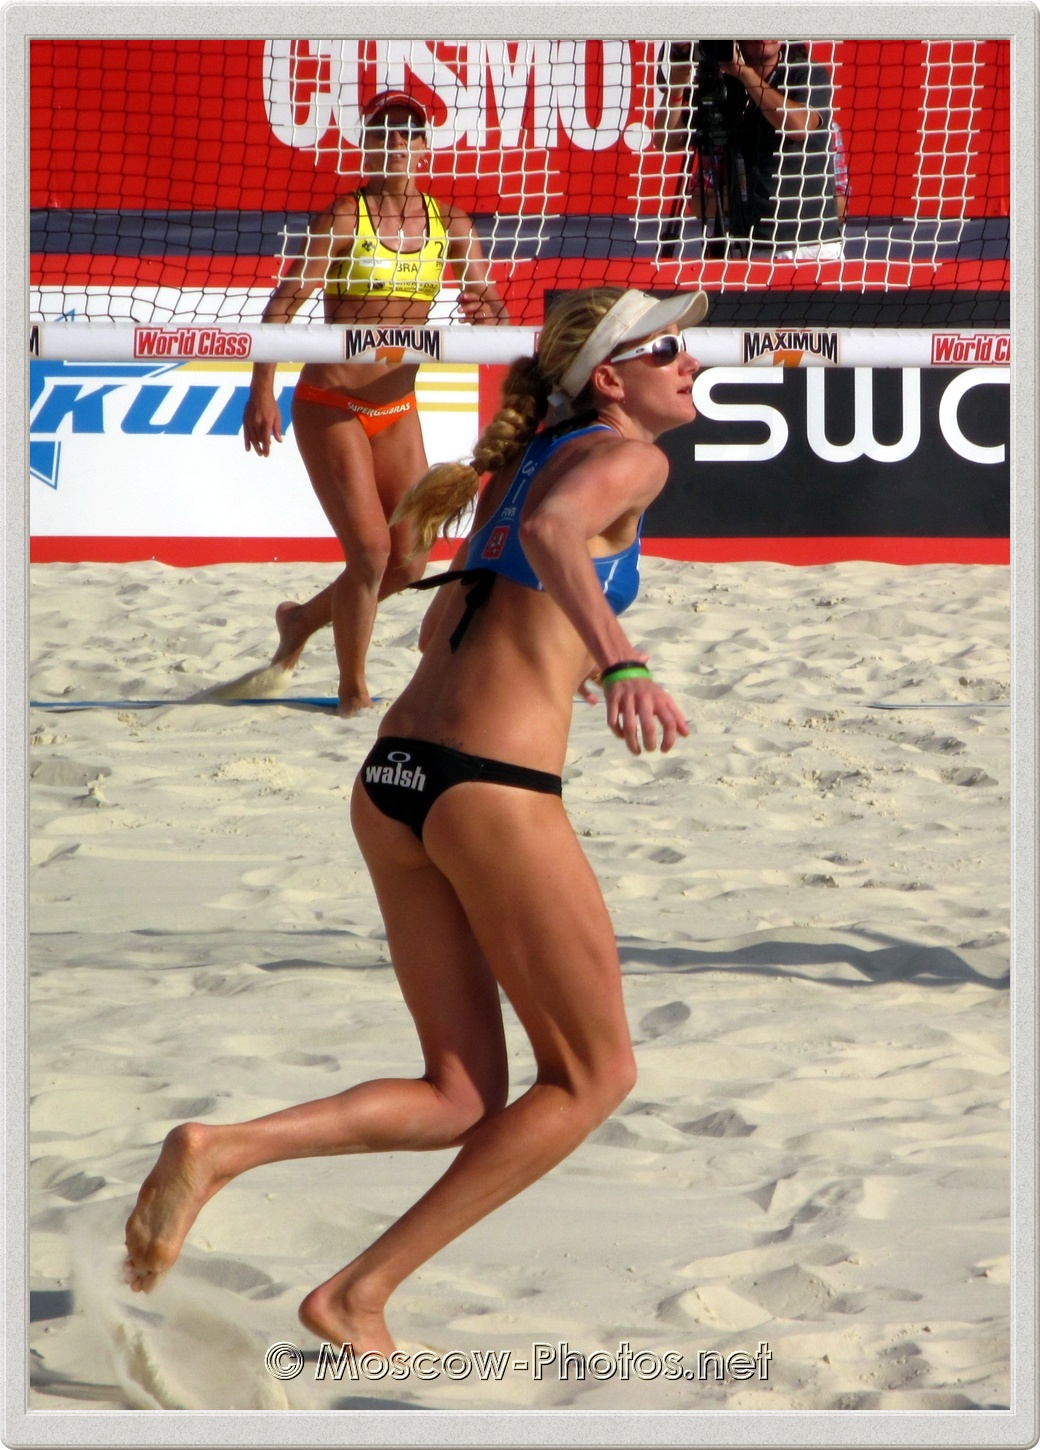 Kerri Walsh in Moscow